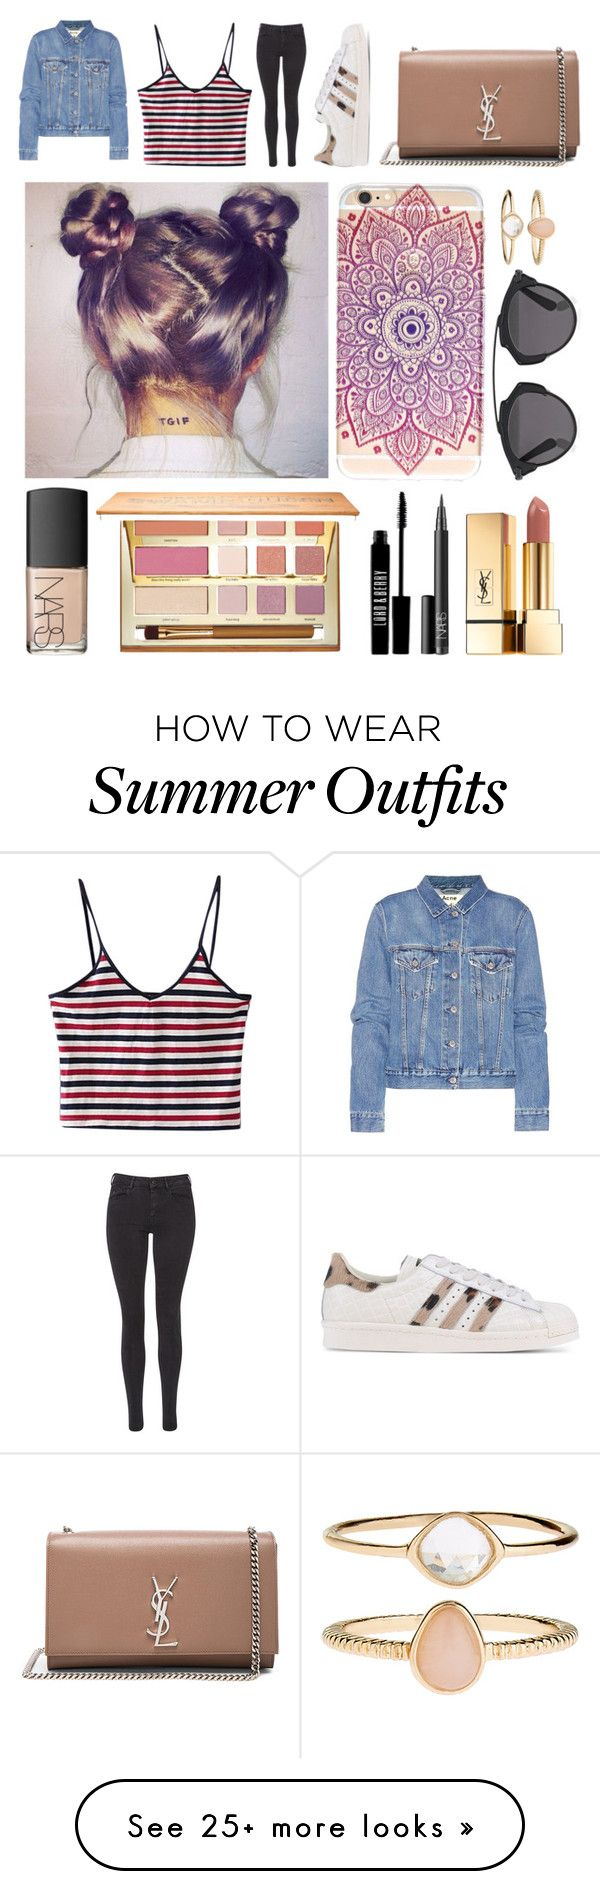 """""""college outfit"""" by neondots on Polyvore featuring Acne Studios, Maiso..."""